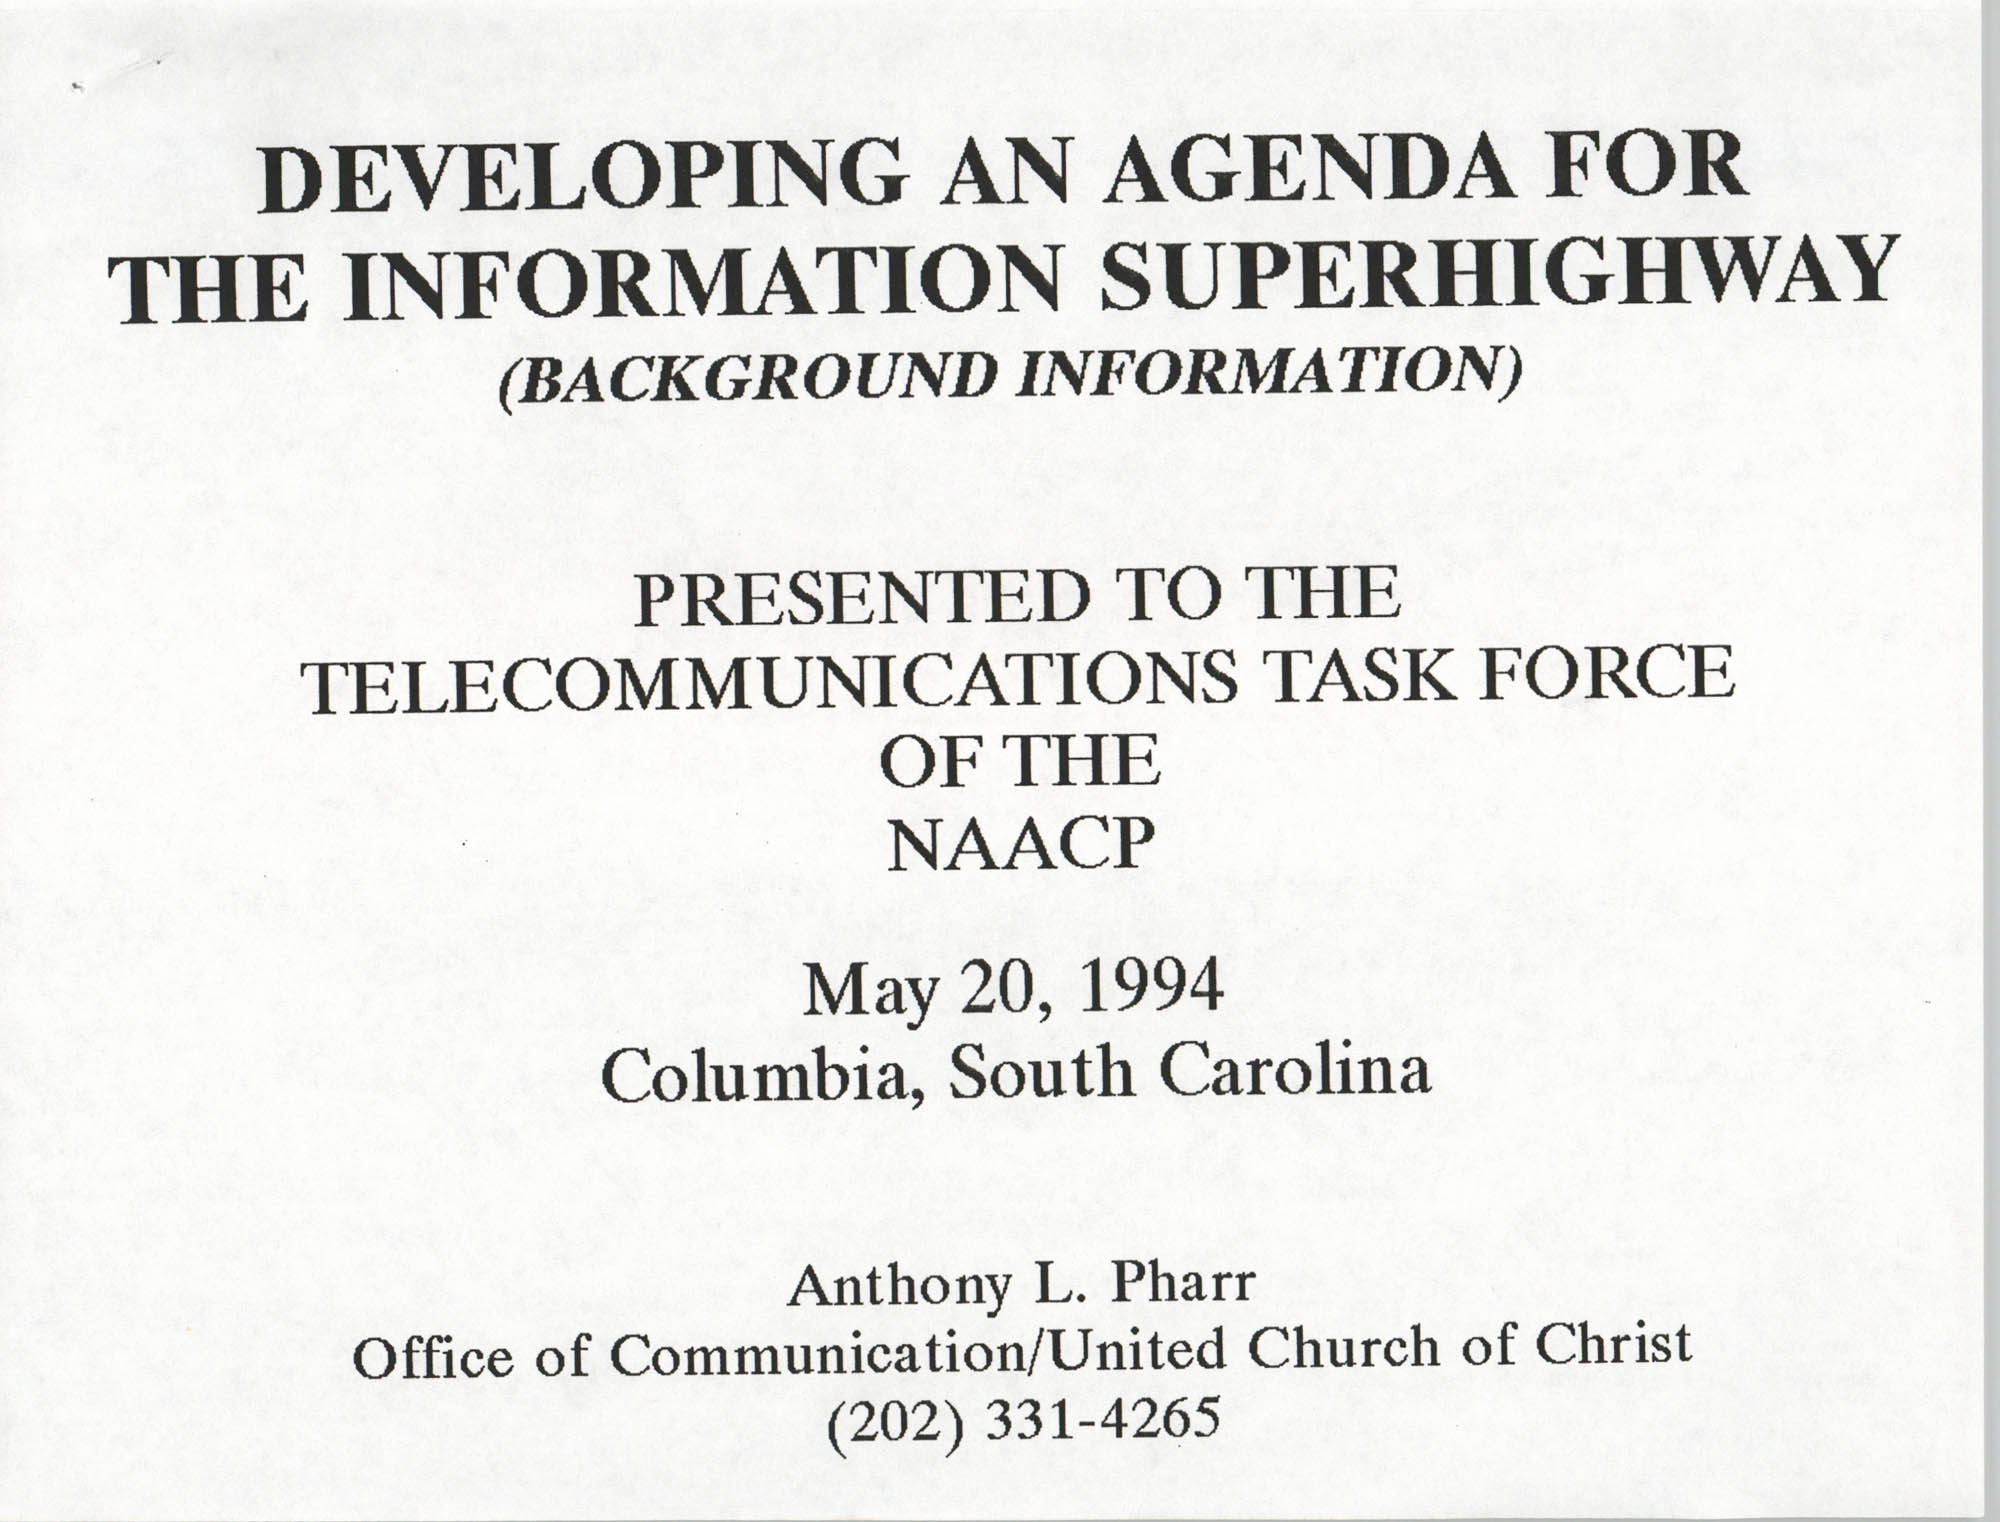 Developing an Agenda for the Information Superhighway, Anthony L. Pharr, May 20, 1994, Page 1